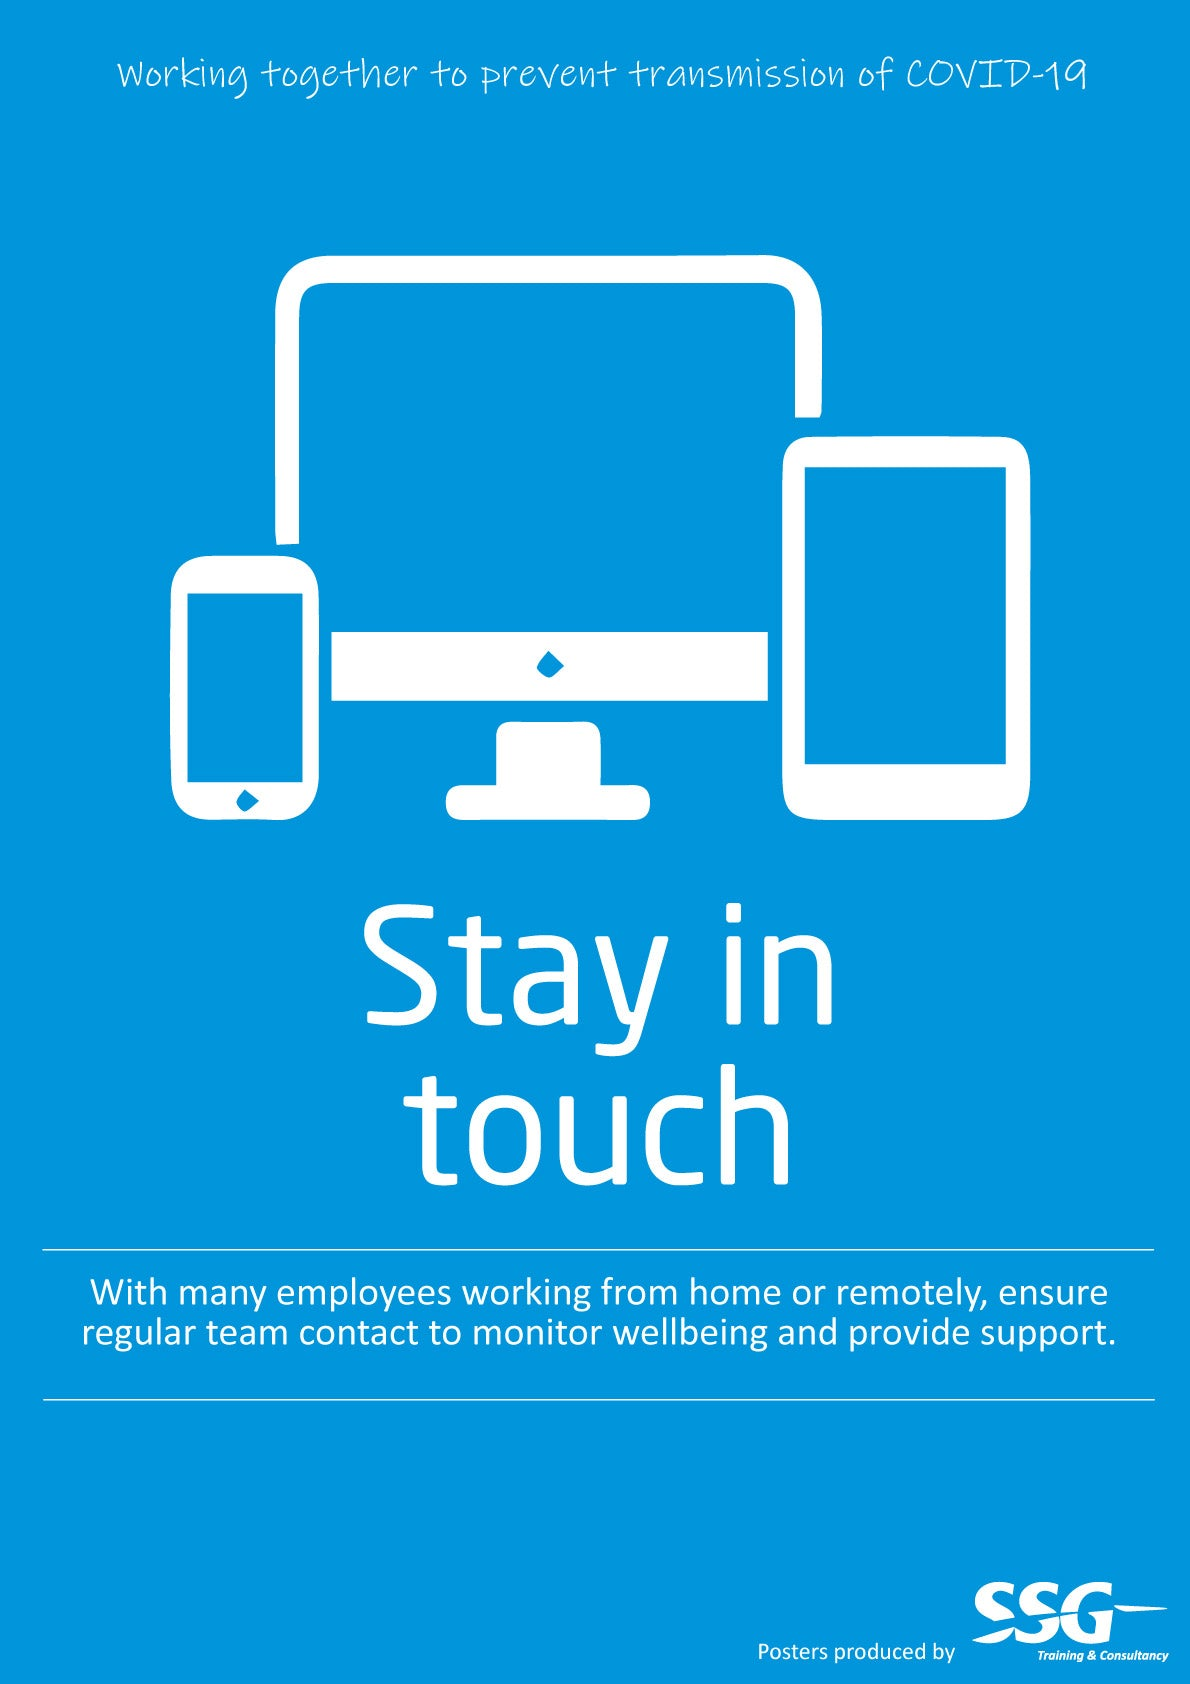 Stay in touch poster